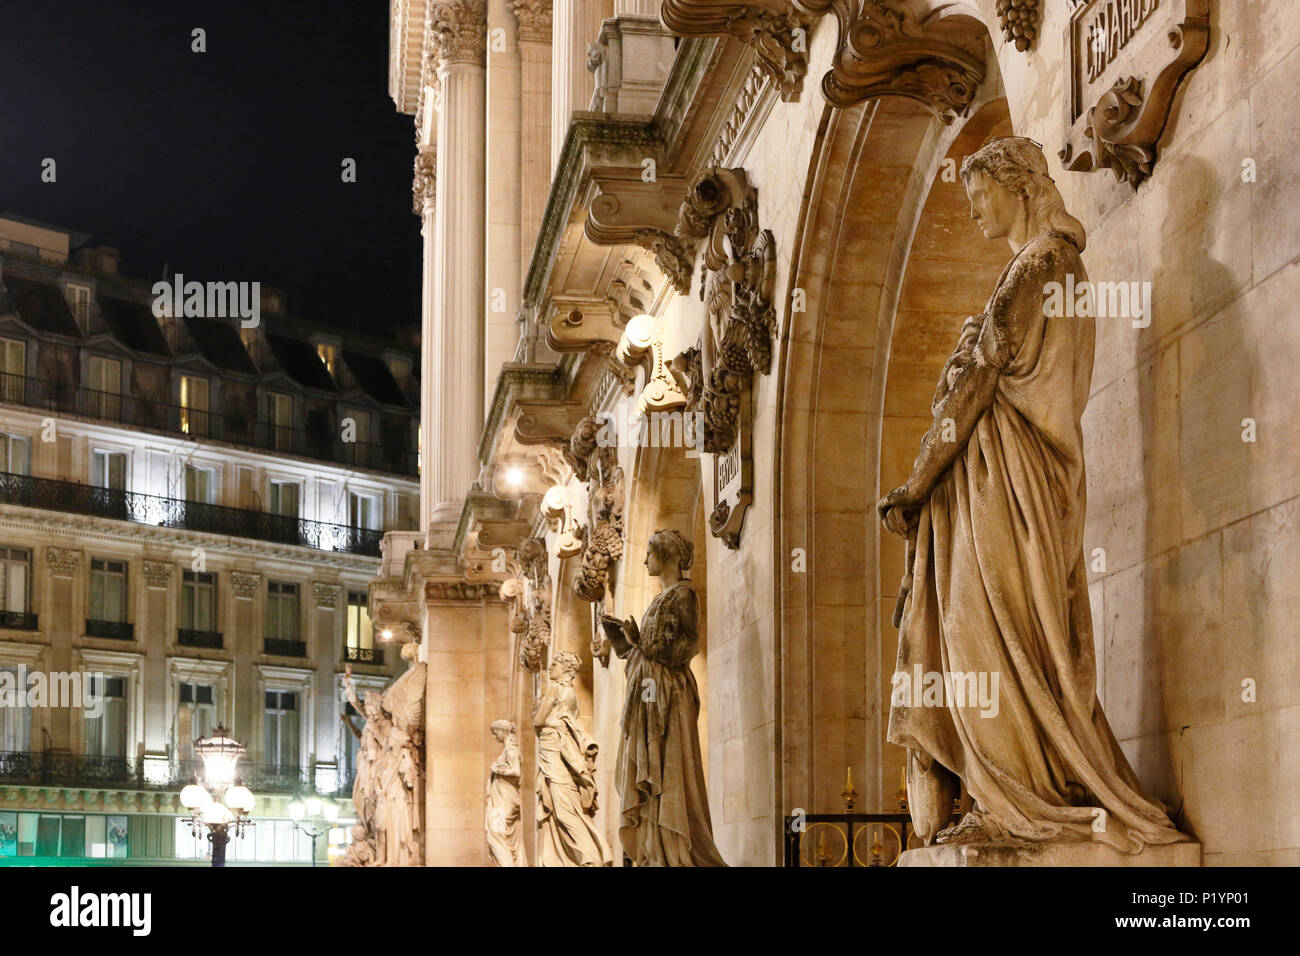 Paris, 9th arrondissement, night Palais Garnier. Sculpture on the front. Stock Photo